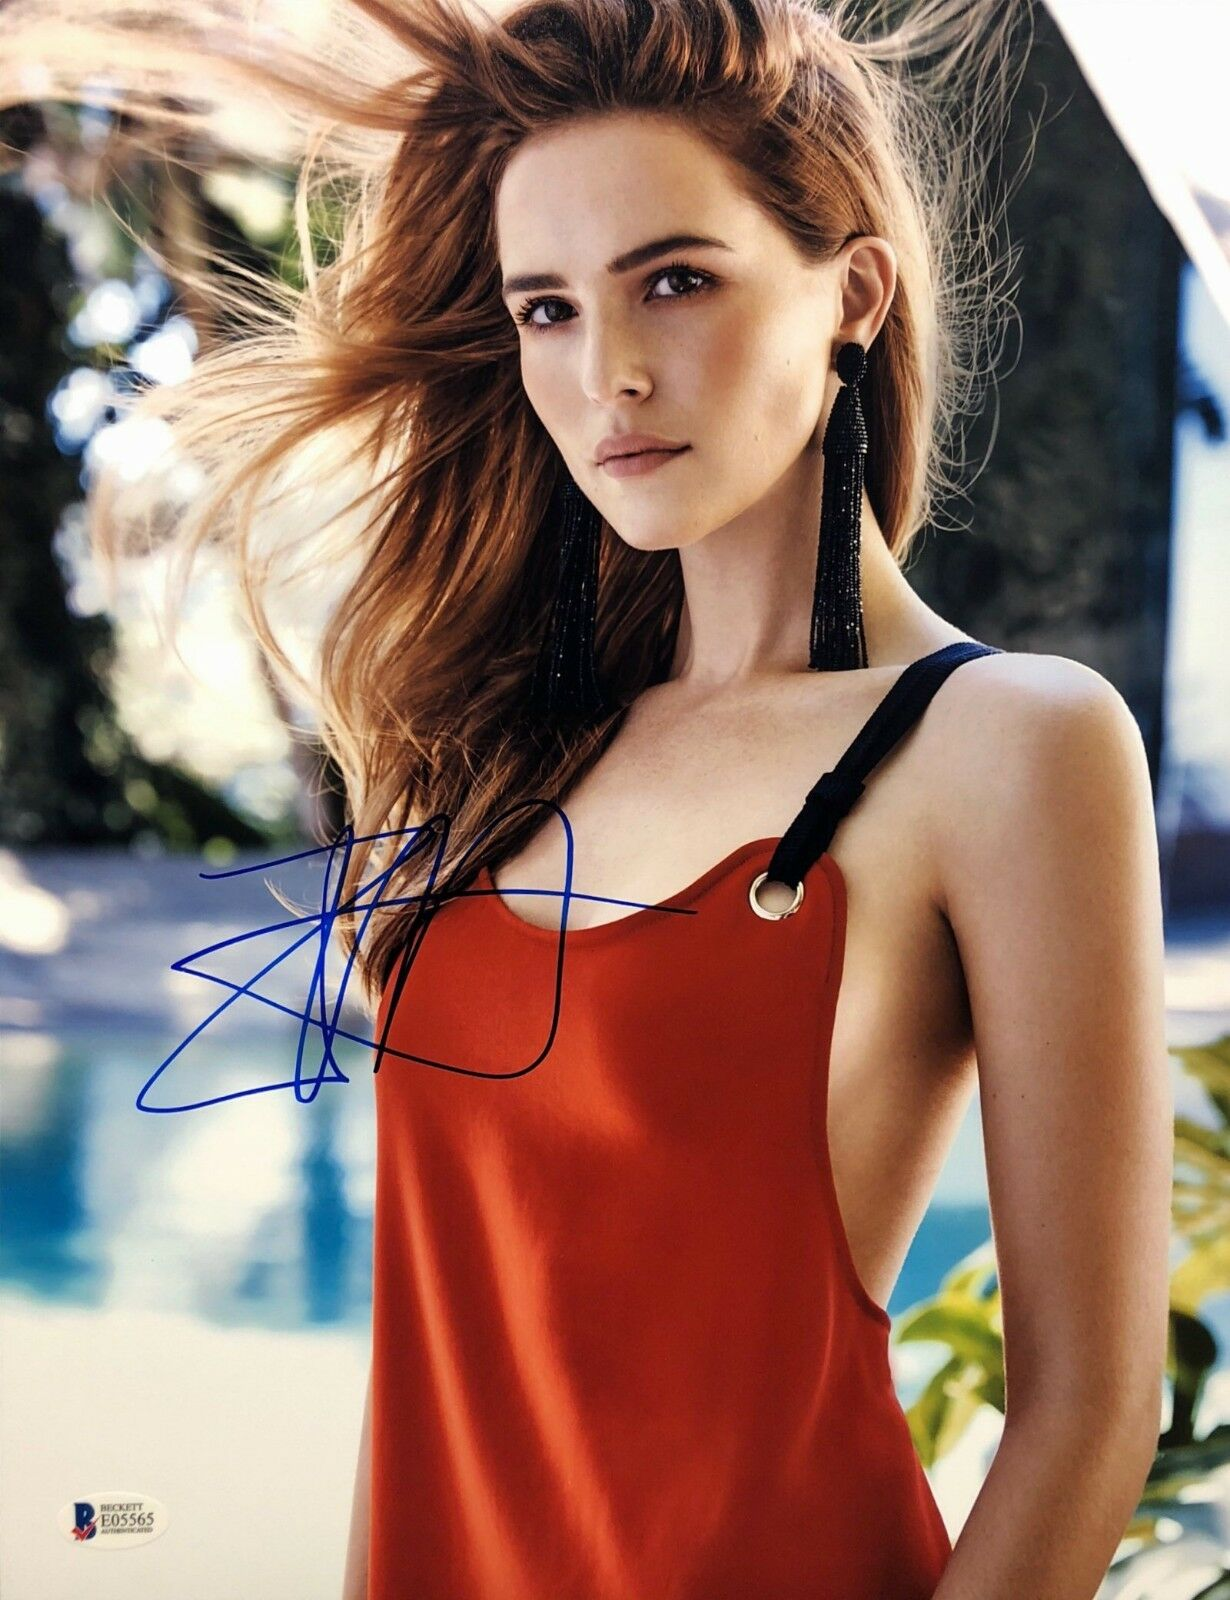 Zoey Deutch Signed 11x14 Photo *Why Him *Dirty Grandma *Model BAS Beckett E05565